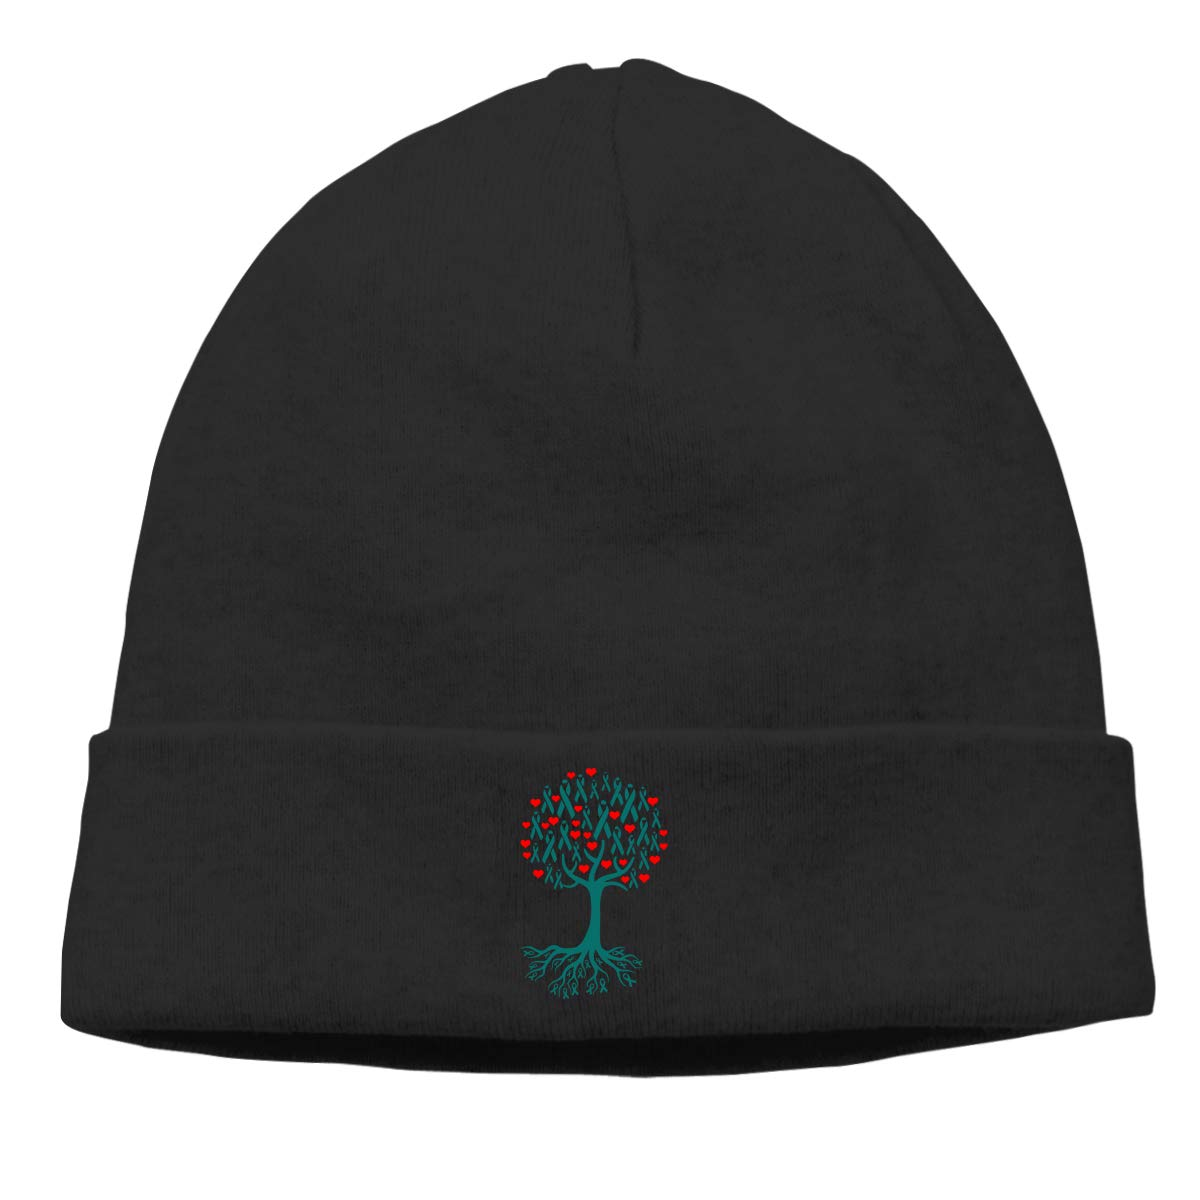 Thin Stretchy /& Soft Winter Cap Ovarian Cancer Awareness Tree Roots Men /& Women Solid Color Beanie Hat